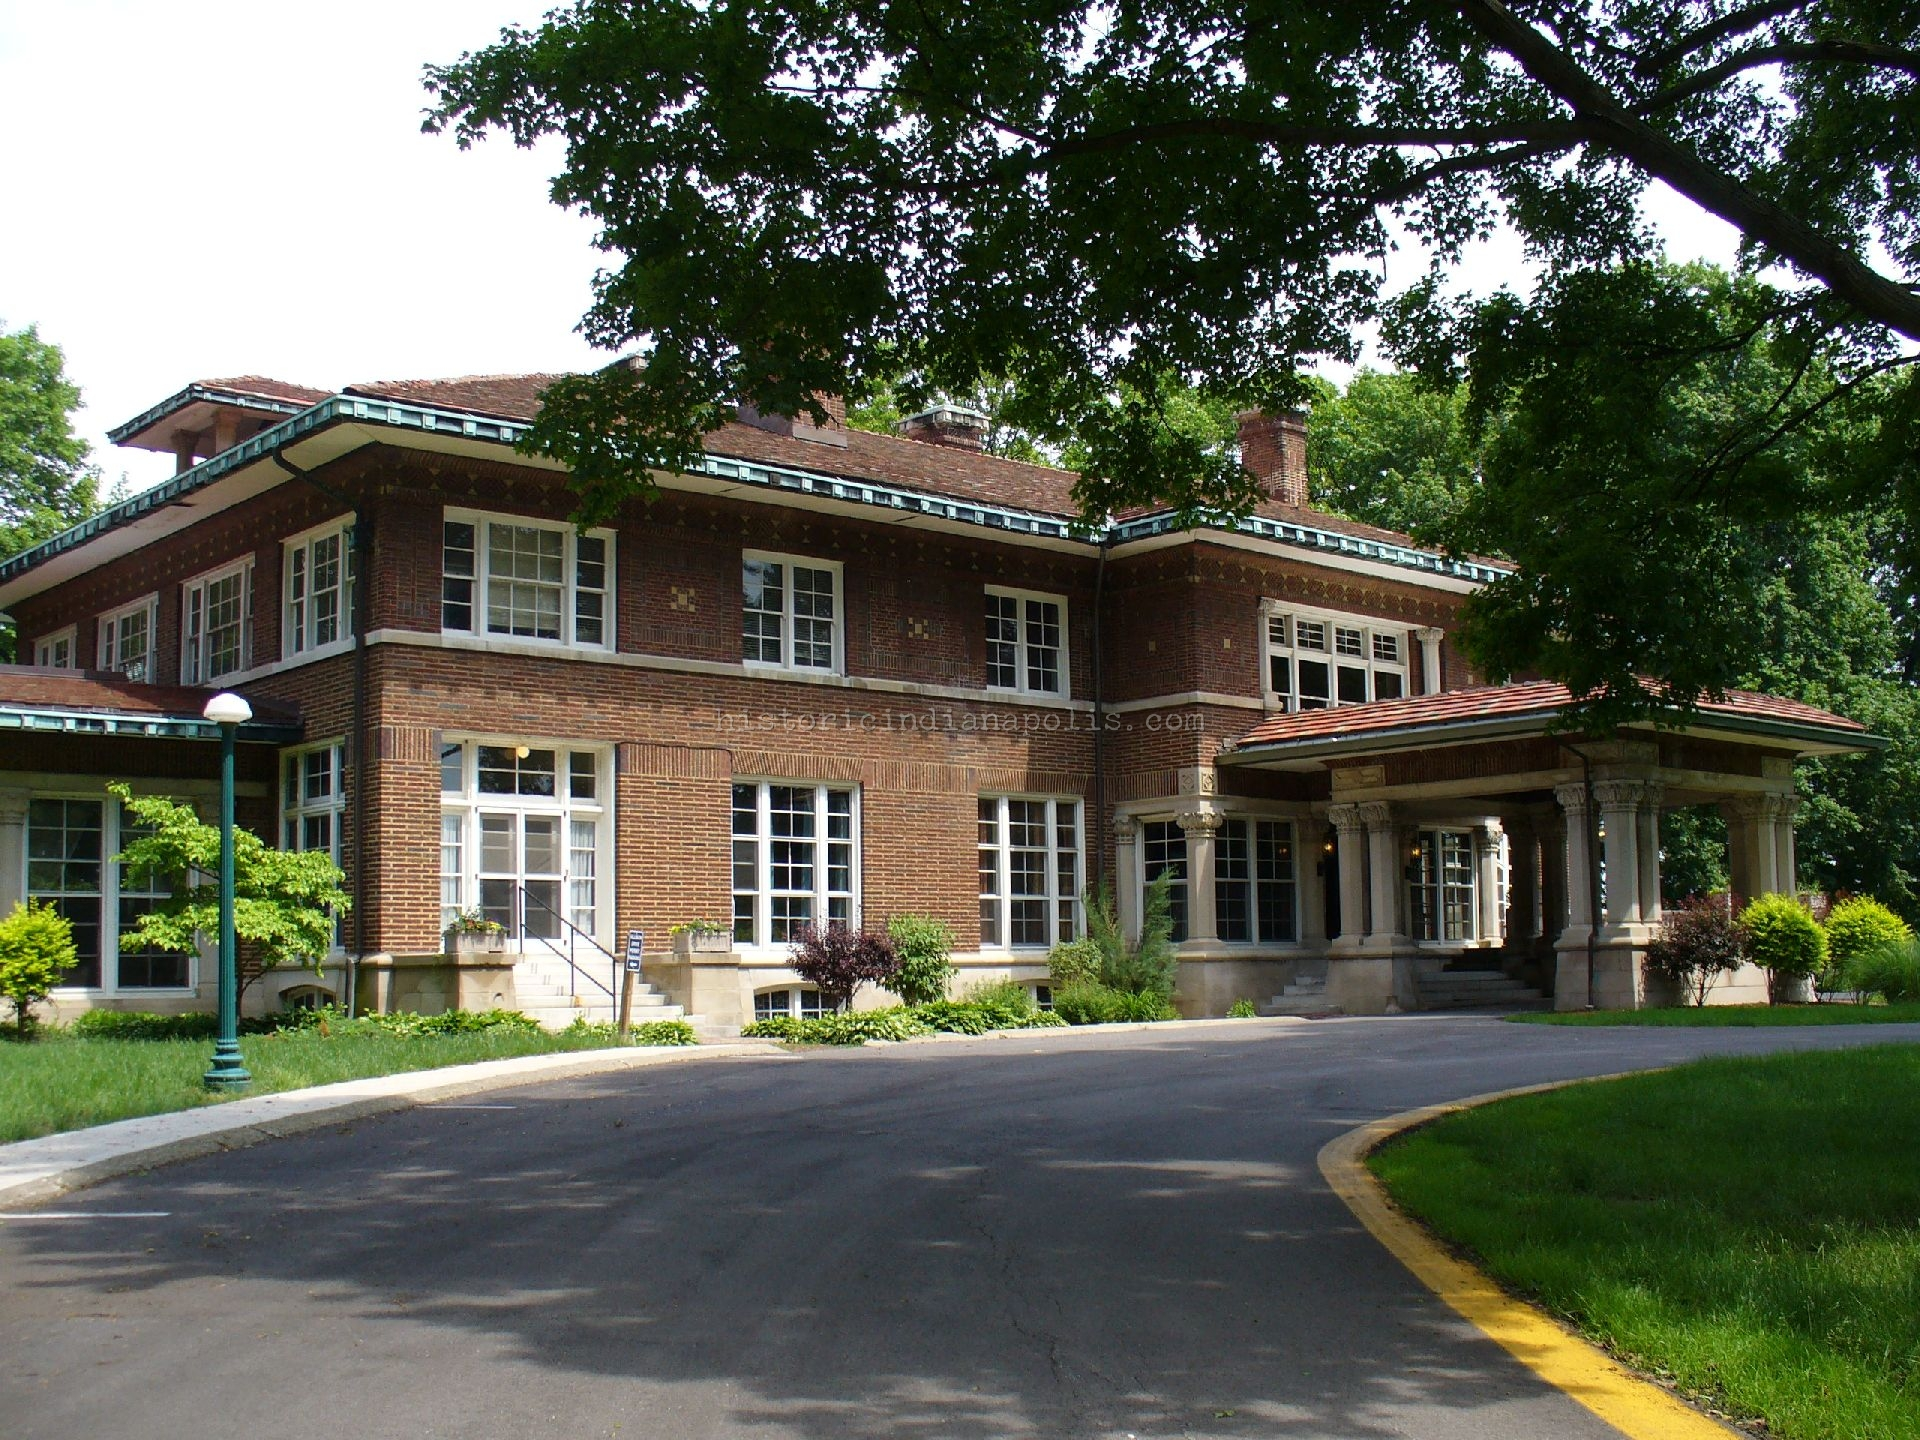 Allison and Wheeler Mansions